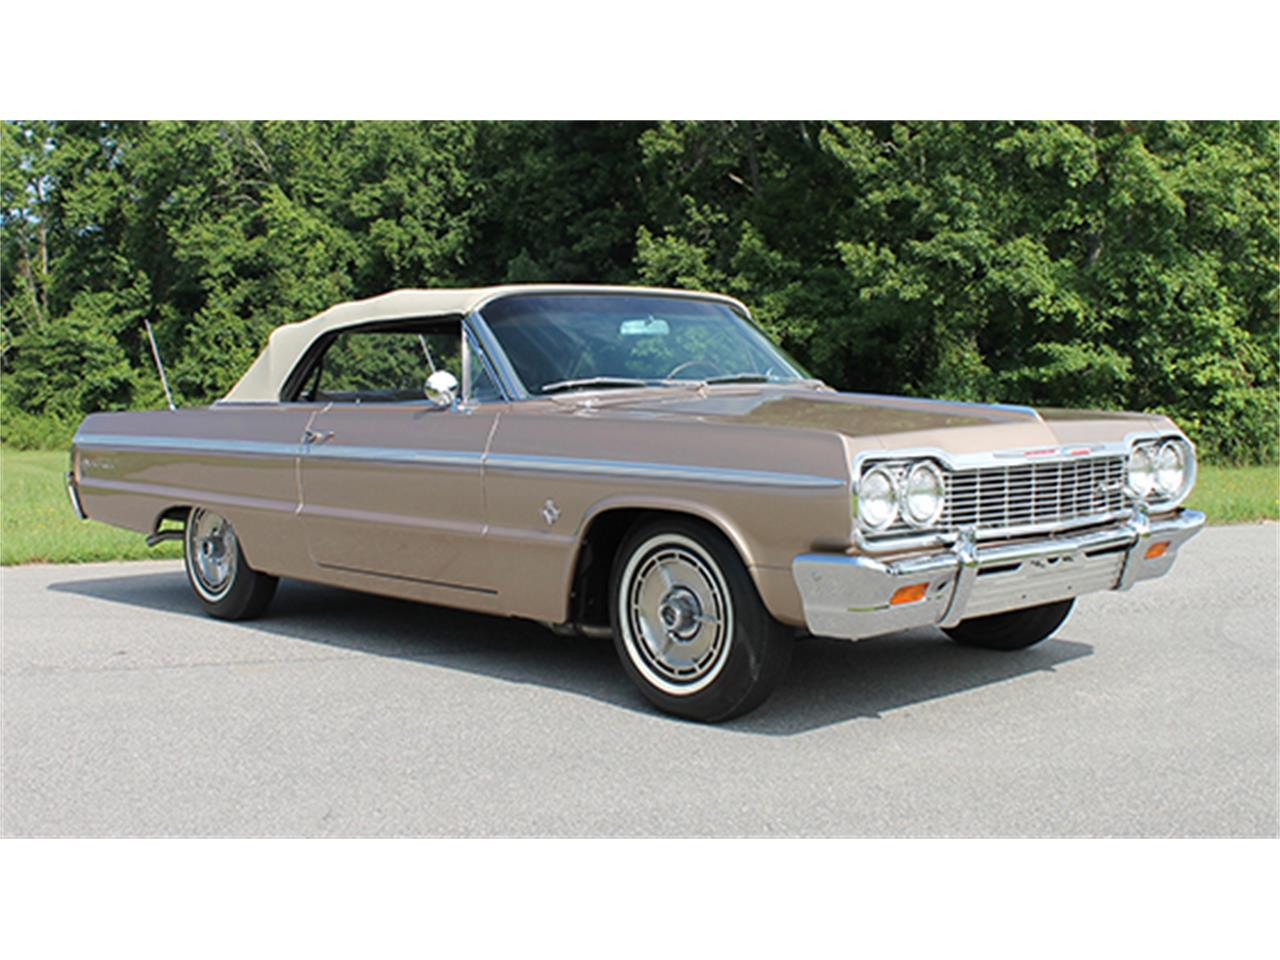 1964 Chevrolet Impala Ss 409 Convertible For Sale